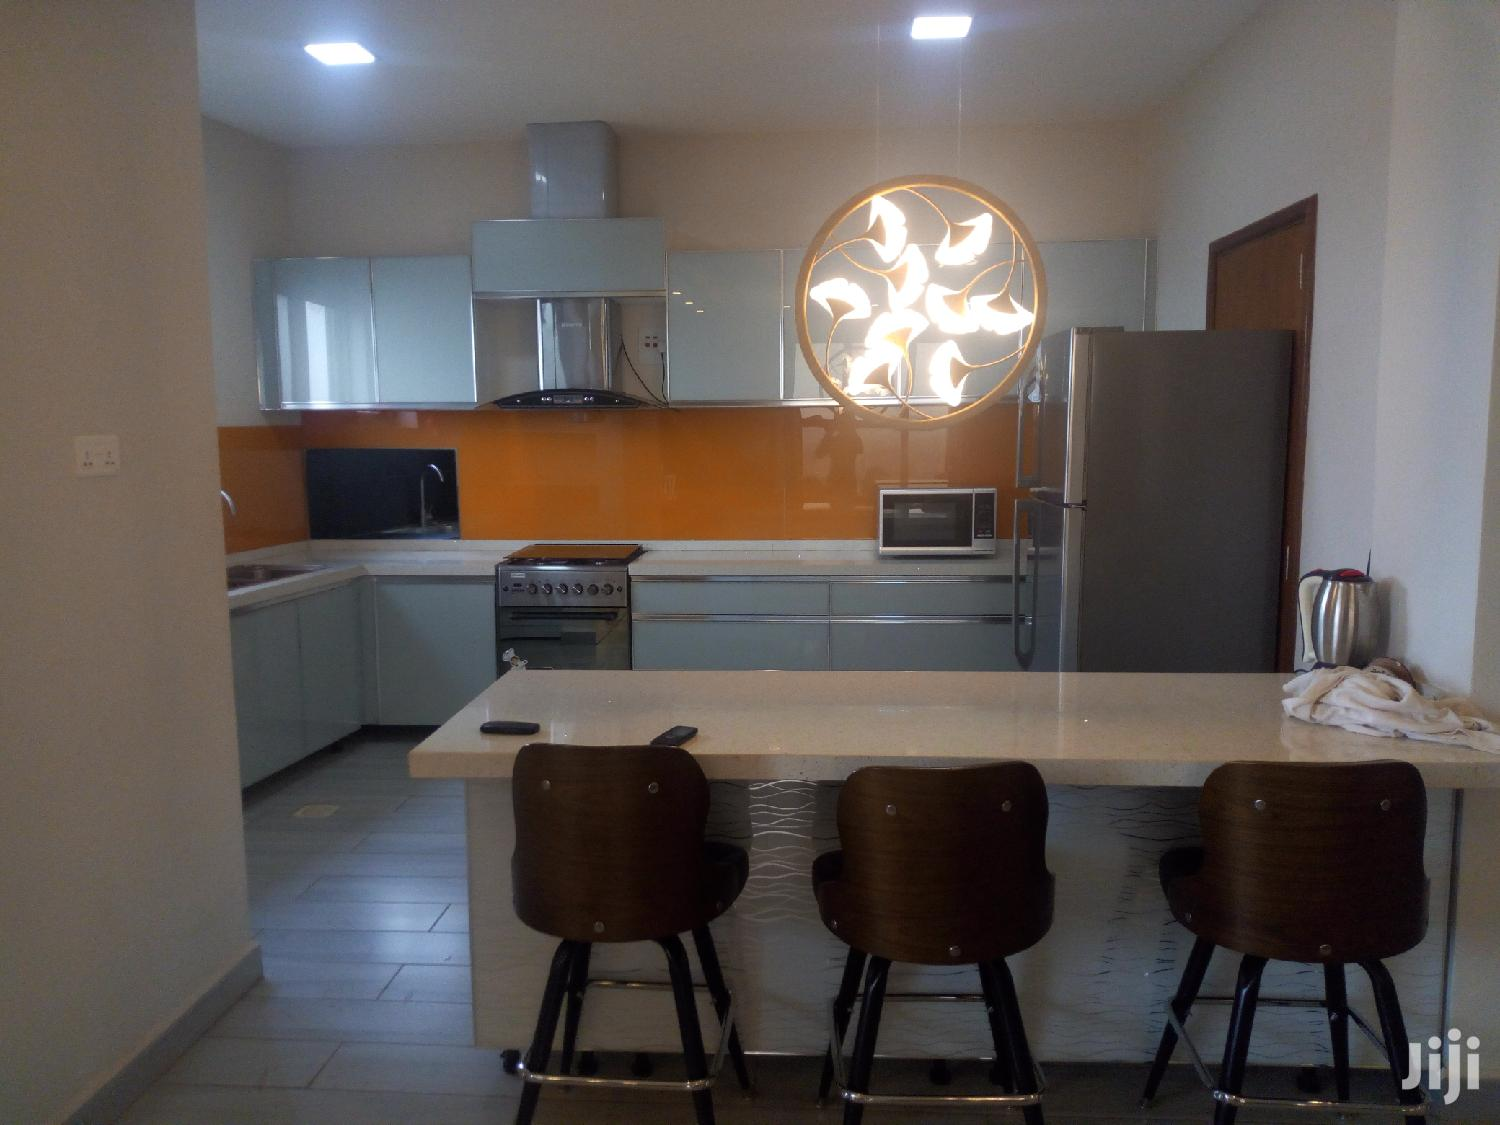 3 Bedroom Fully Furnished Apartment In Naguru For Rent